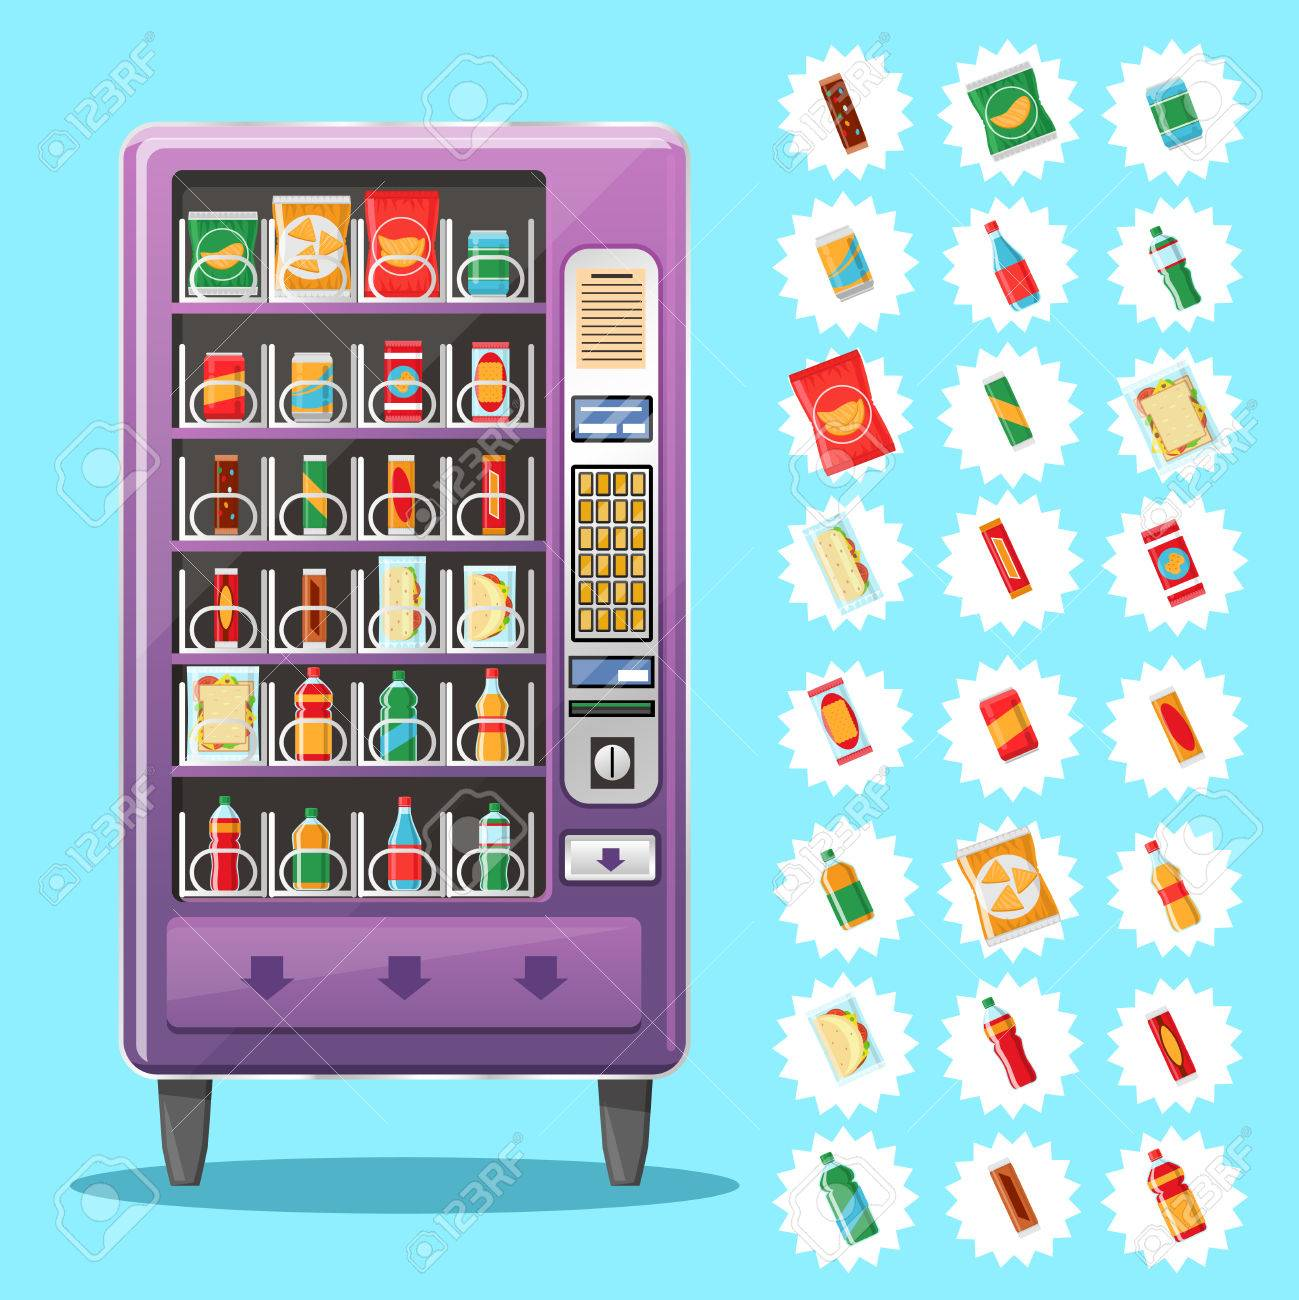 Vending machine with snacks and drinks. Machine automatic, public vending, snack drink, purchase food. Vector illustration - 54453277